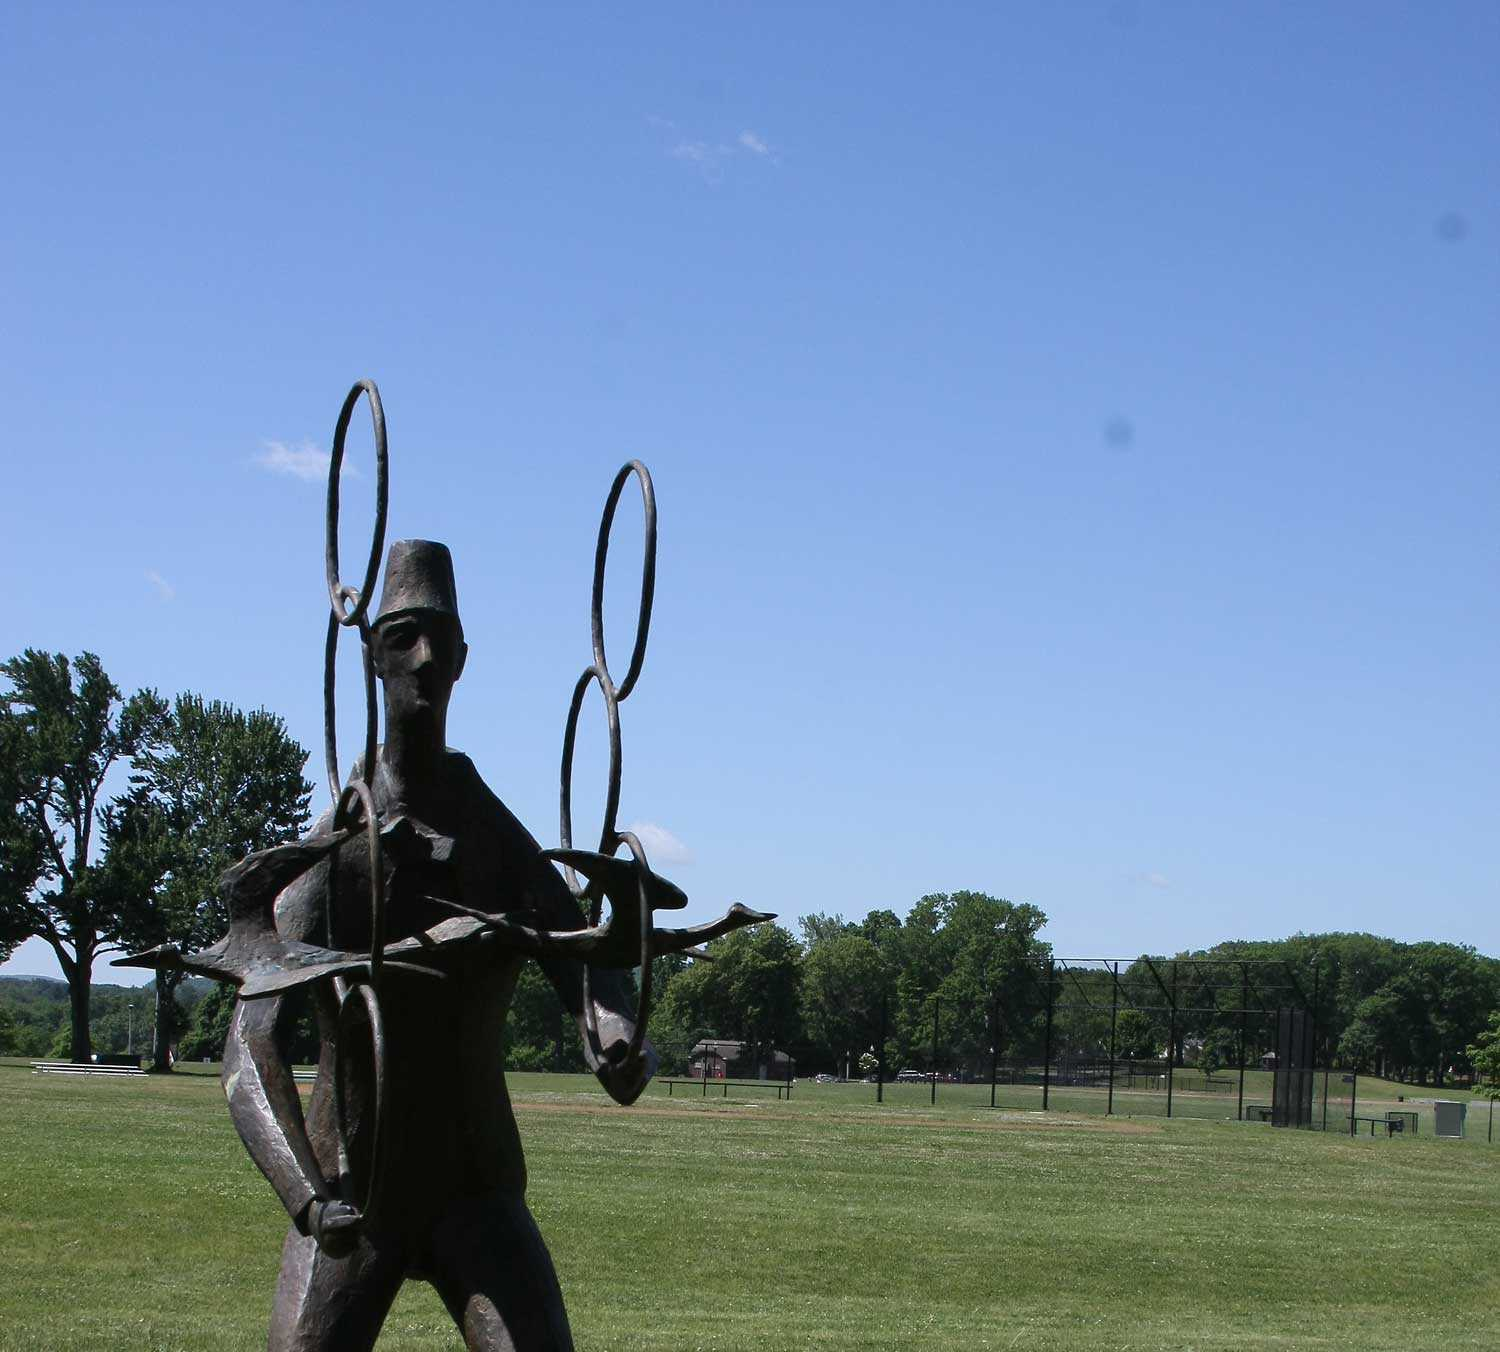 <p>Chaim Gross, <i>The Juggler,</i> 1975, Bronze, Long Term Loan from the Renee and Chaim Gross Foundation</p>